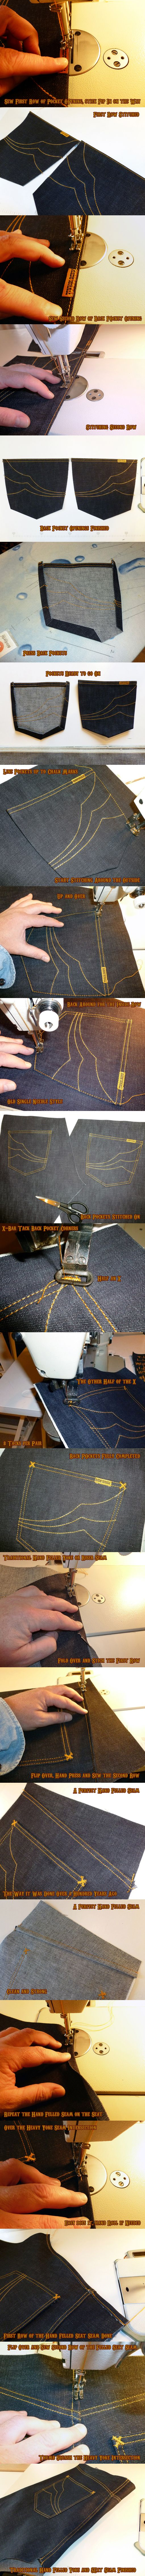 Awesome pic series on making jeans yourself.  Don't know why you'd bother making denim jeans, but if you wanted some with different fabric it might be worth the effort.